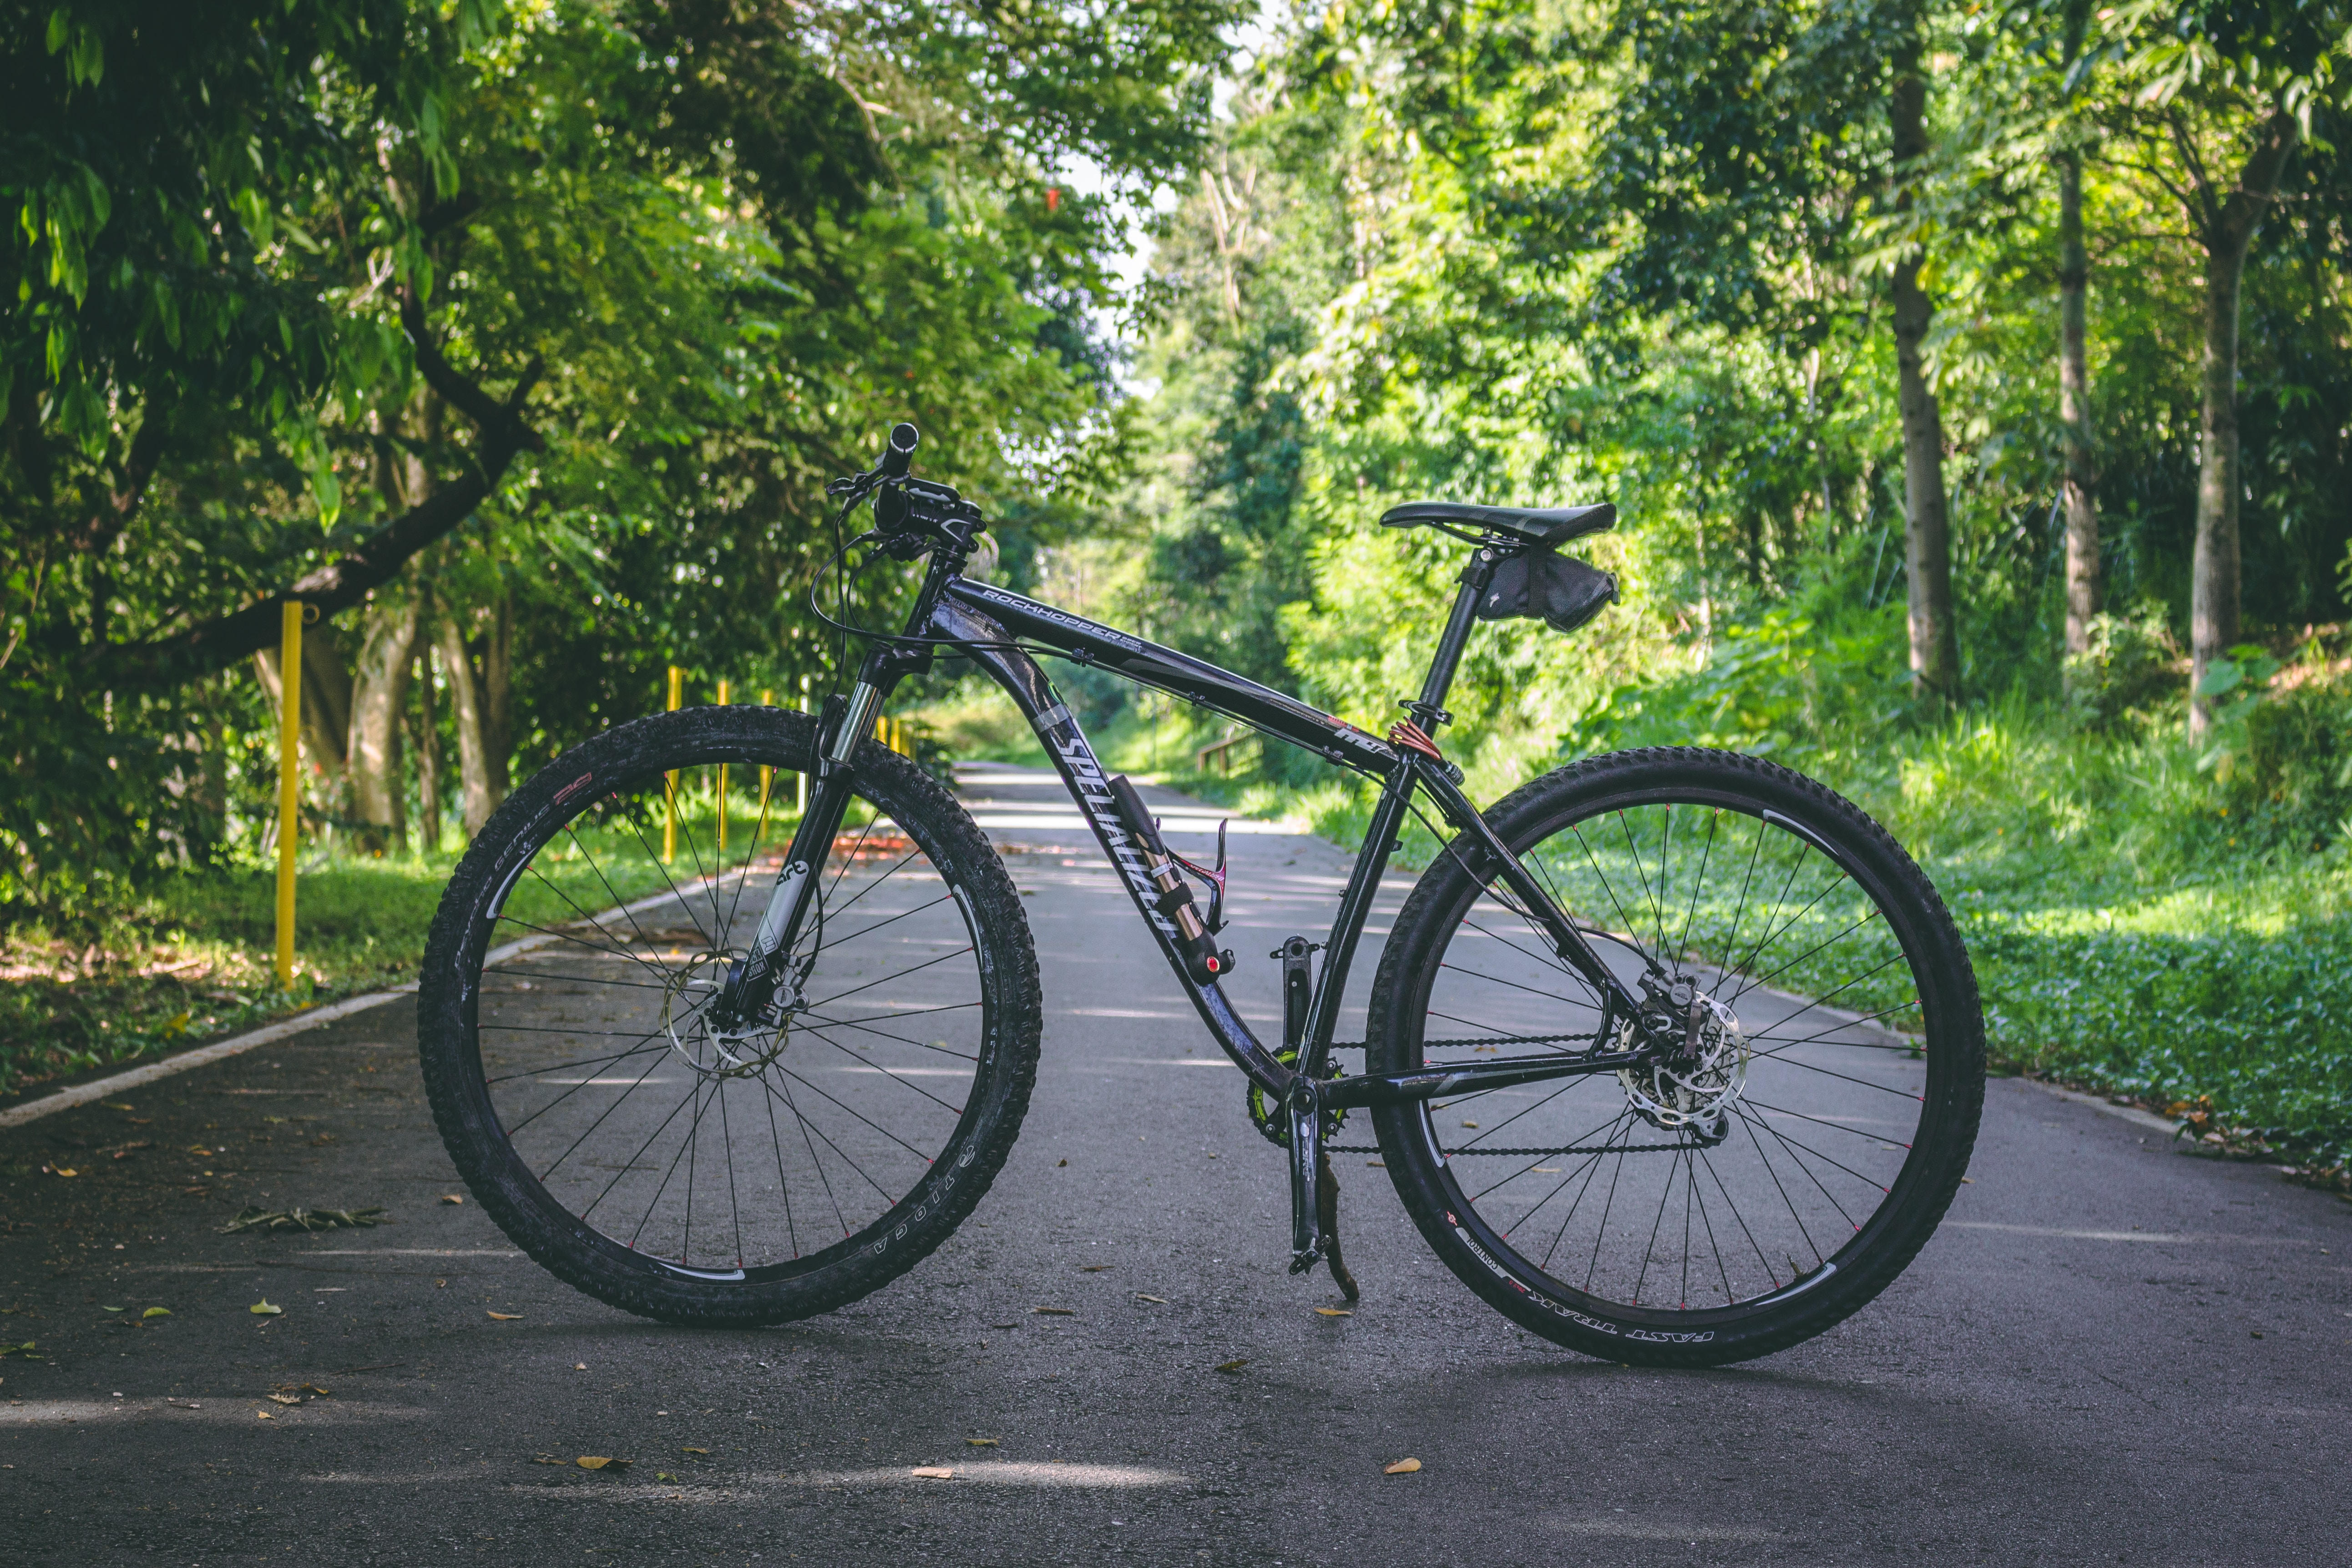 Cycle Gaining more Popularity